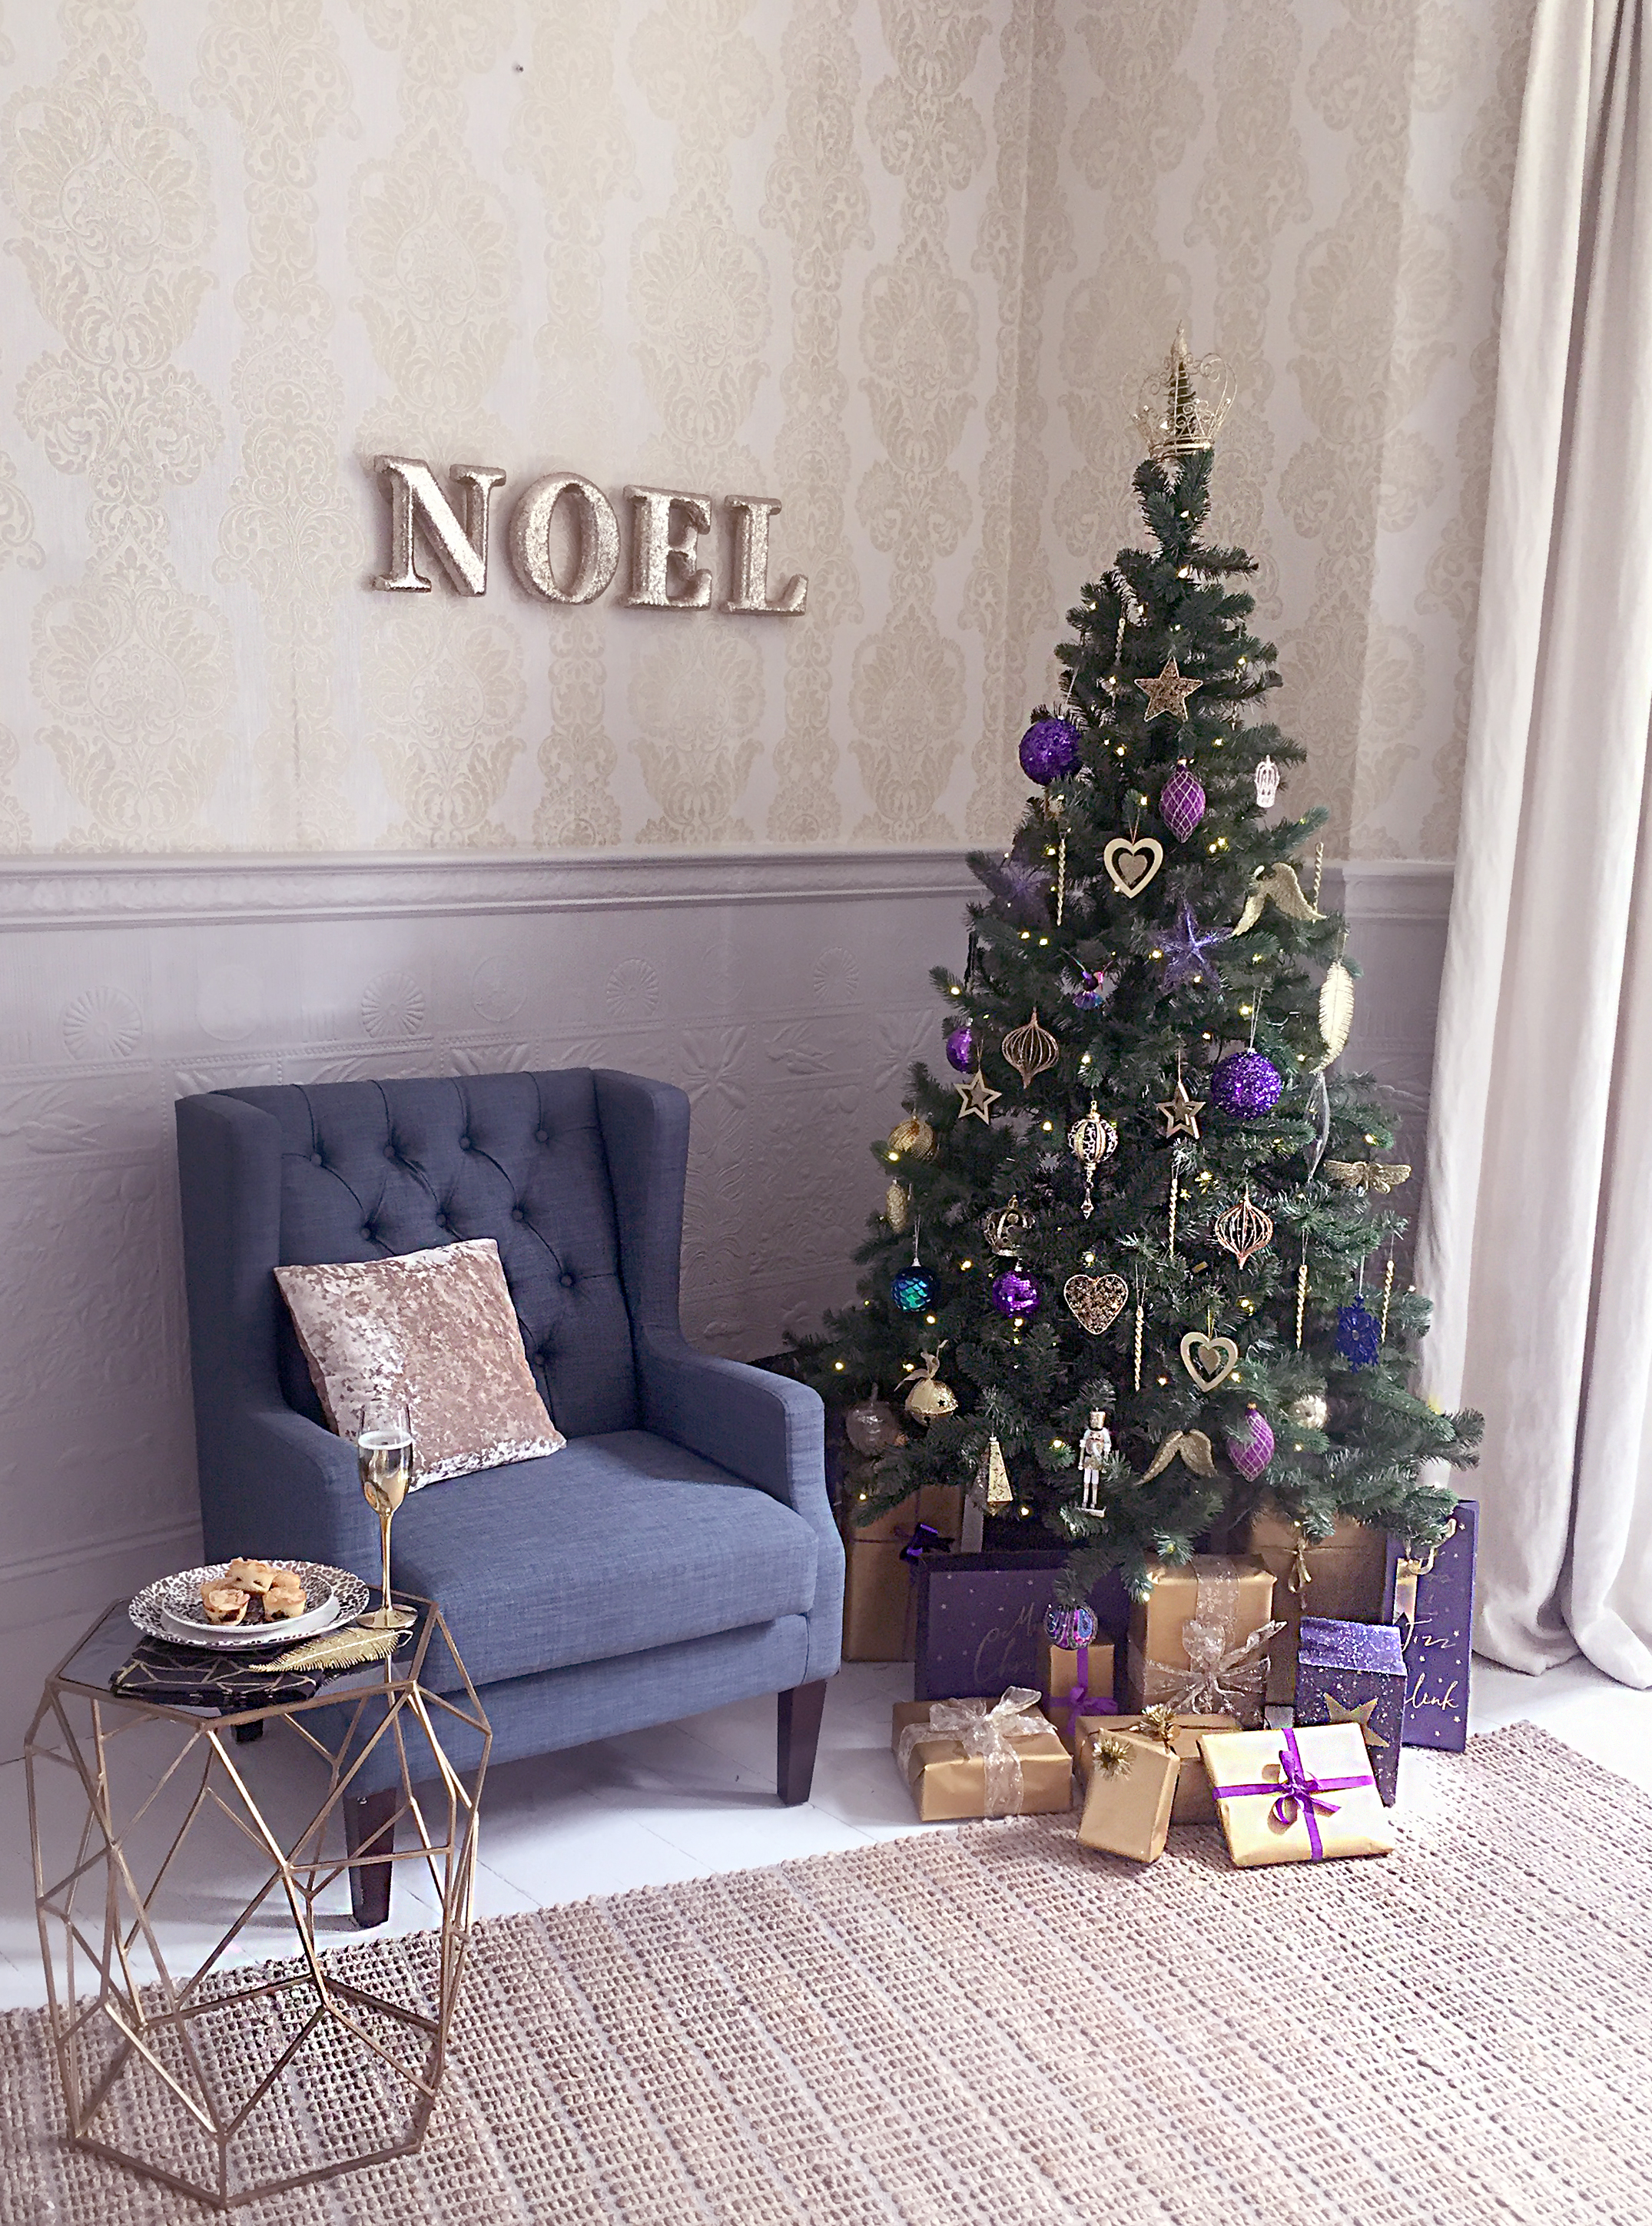 The finished tree and how everything came together are on the December issue of Style at Home Magazine (the issue is out now!)